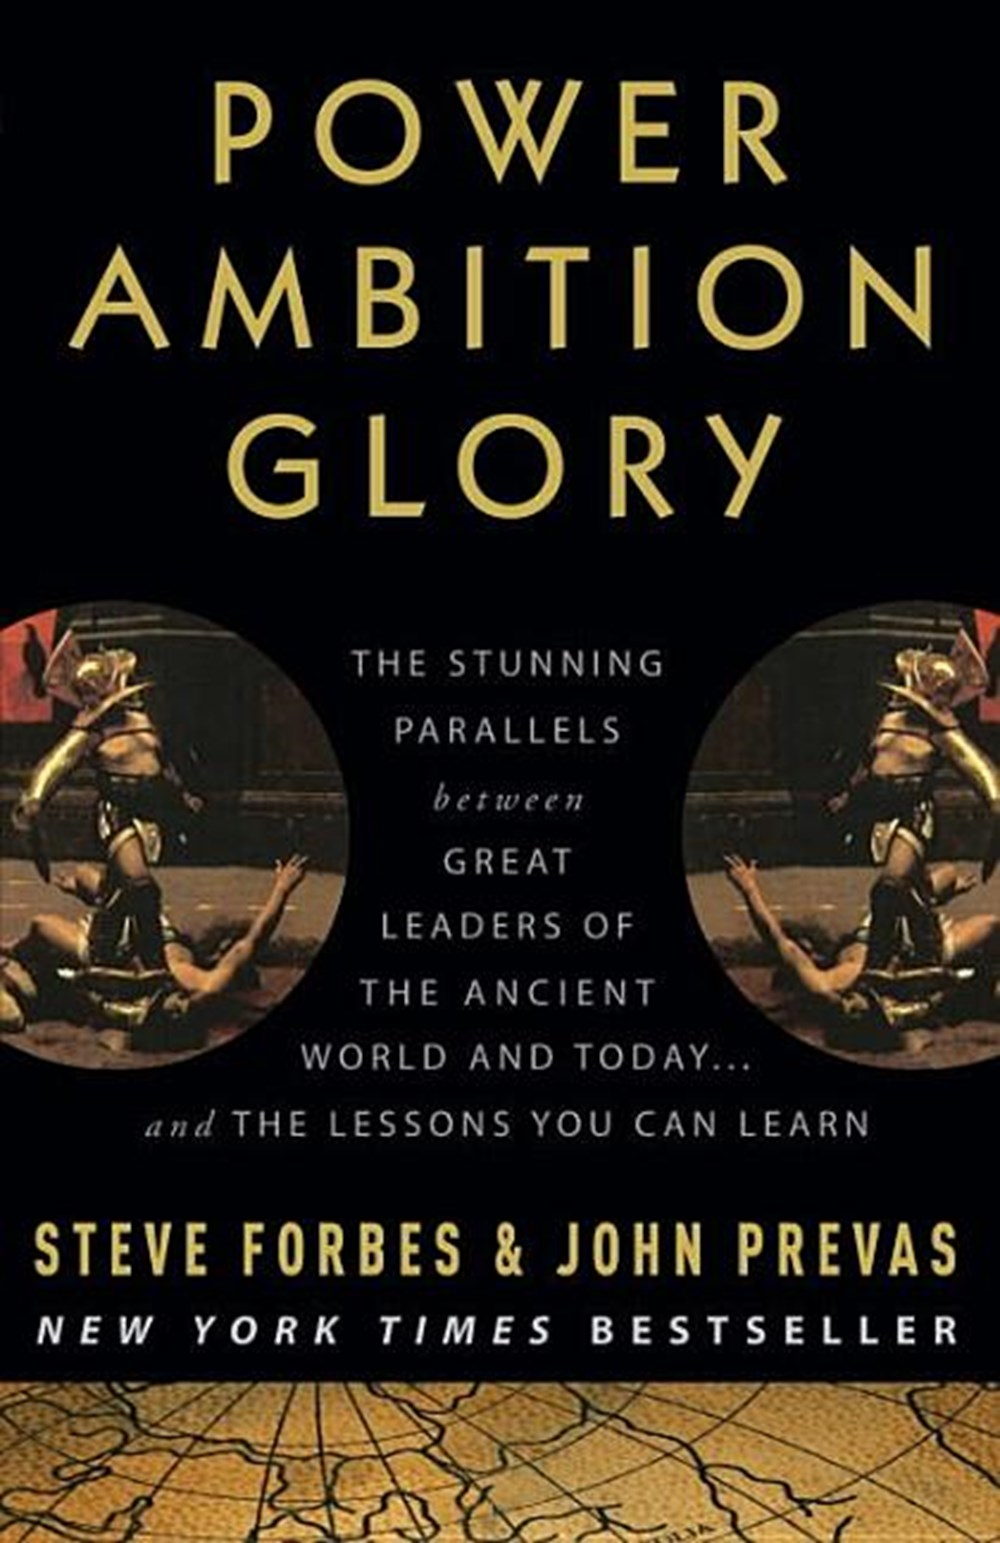 Power Ambition Glory The Stunning Parallels Between Great Leaders of the Ancient World and Today...